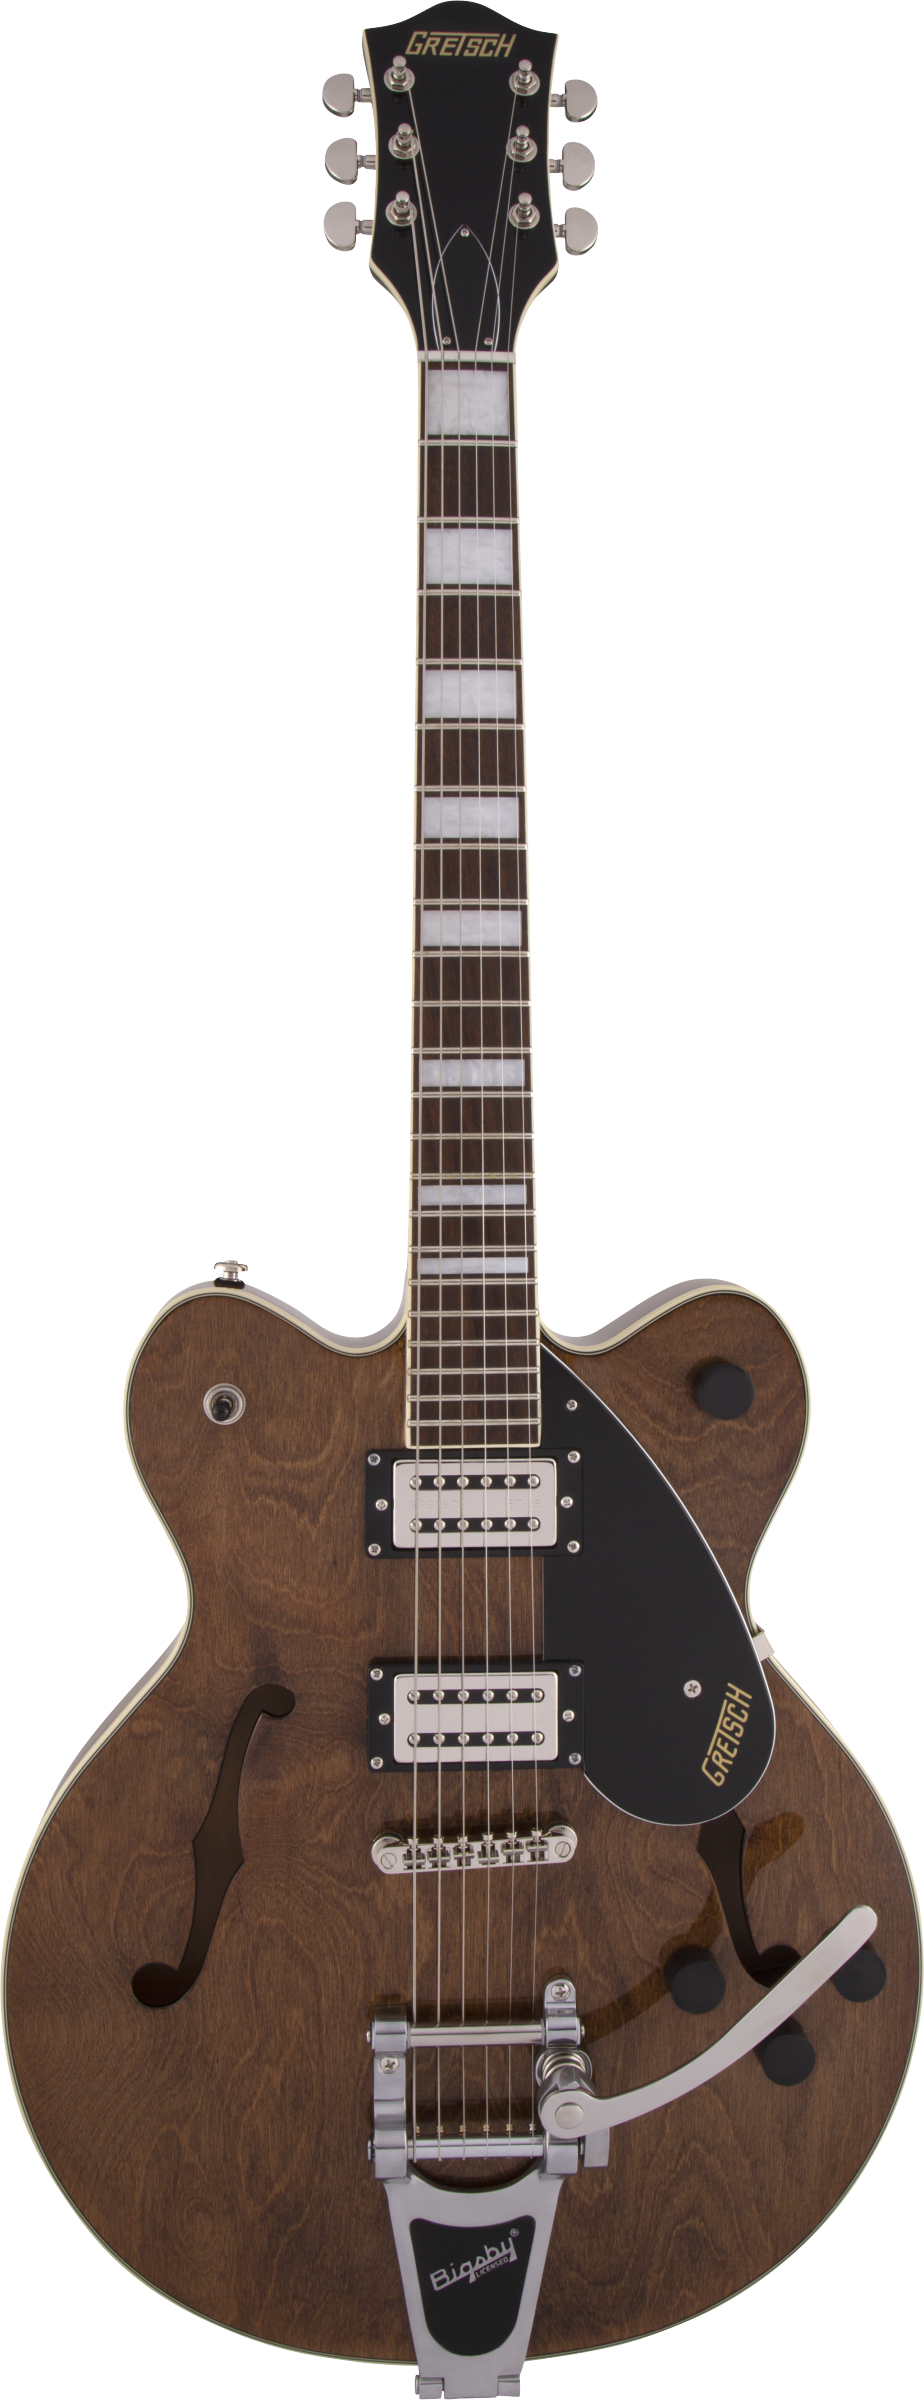 Gretsch G2622T Imperial Stain Streamliner Center Block Double Cutaway with Bigsby